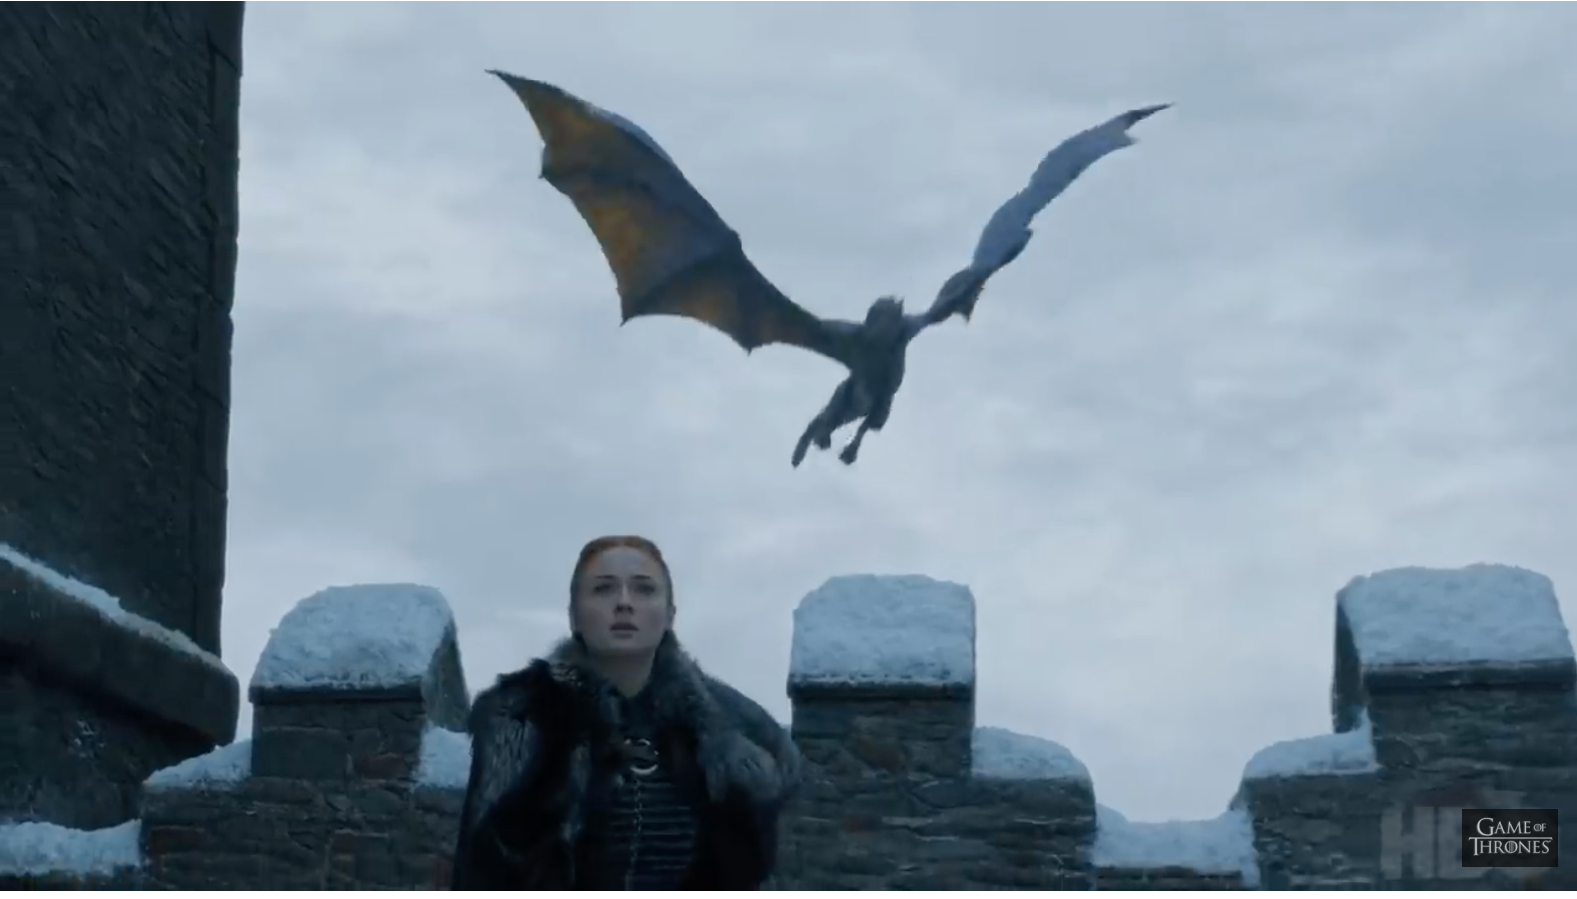 Game of Thrones – final season trailer out now